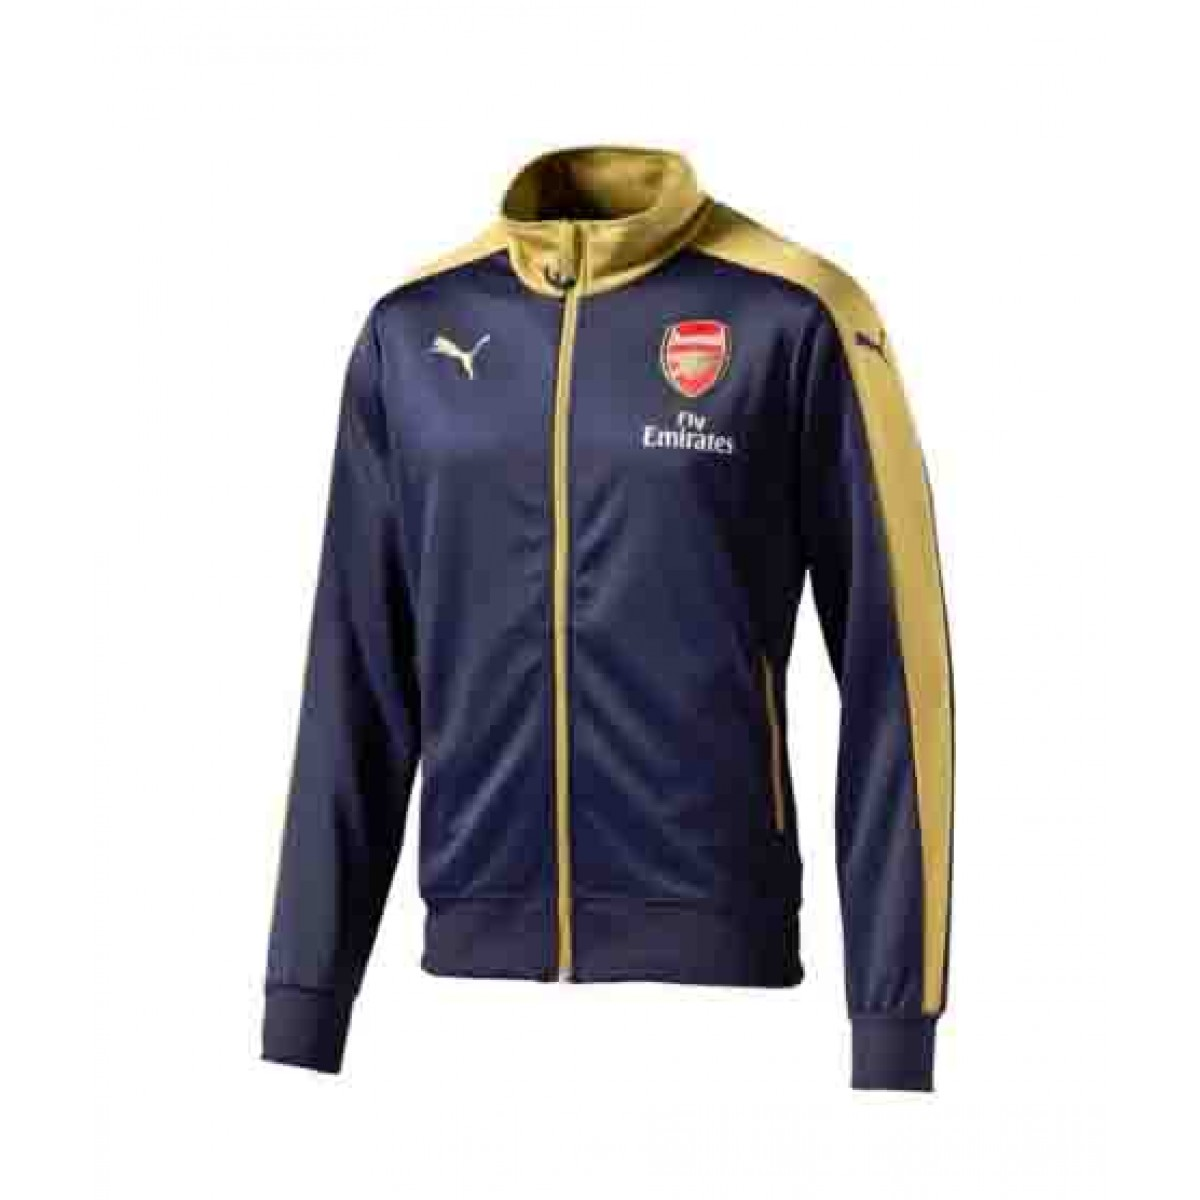 18981320175a Arsenal Puma Stadium Jackets Price in Pakistan